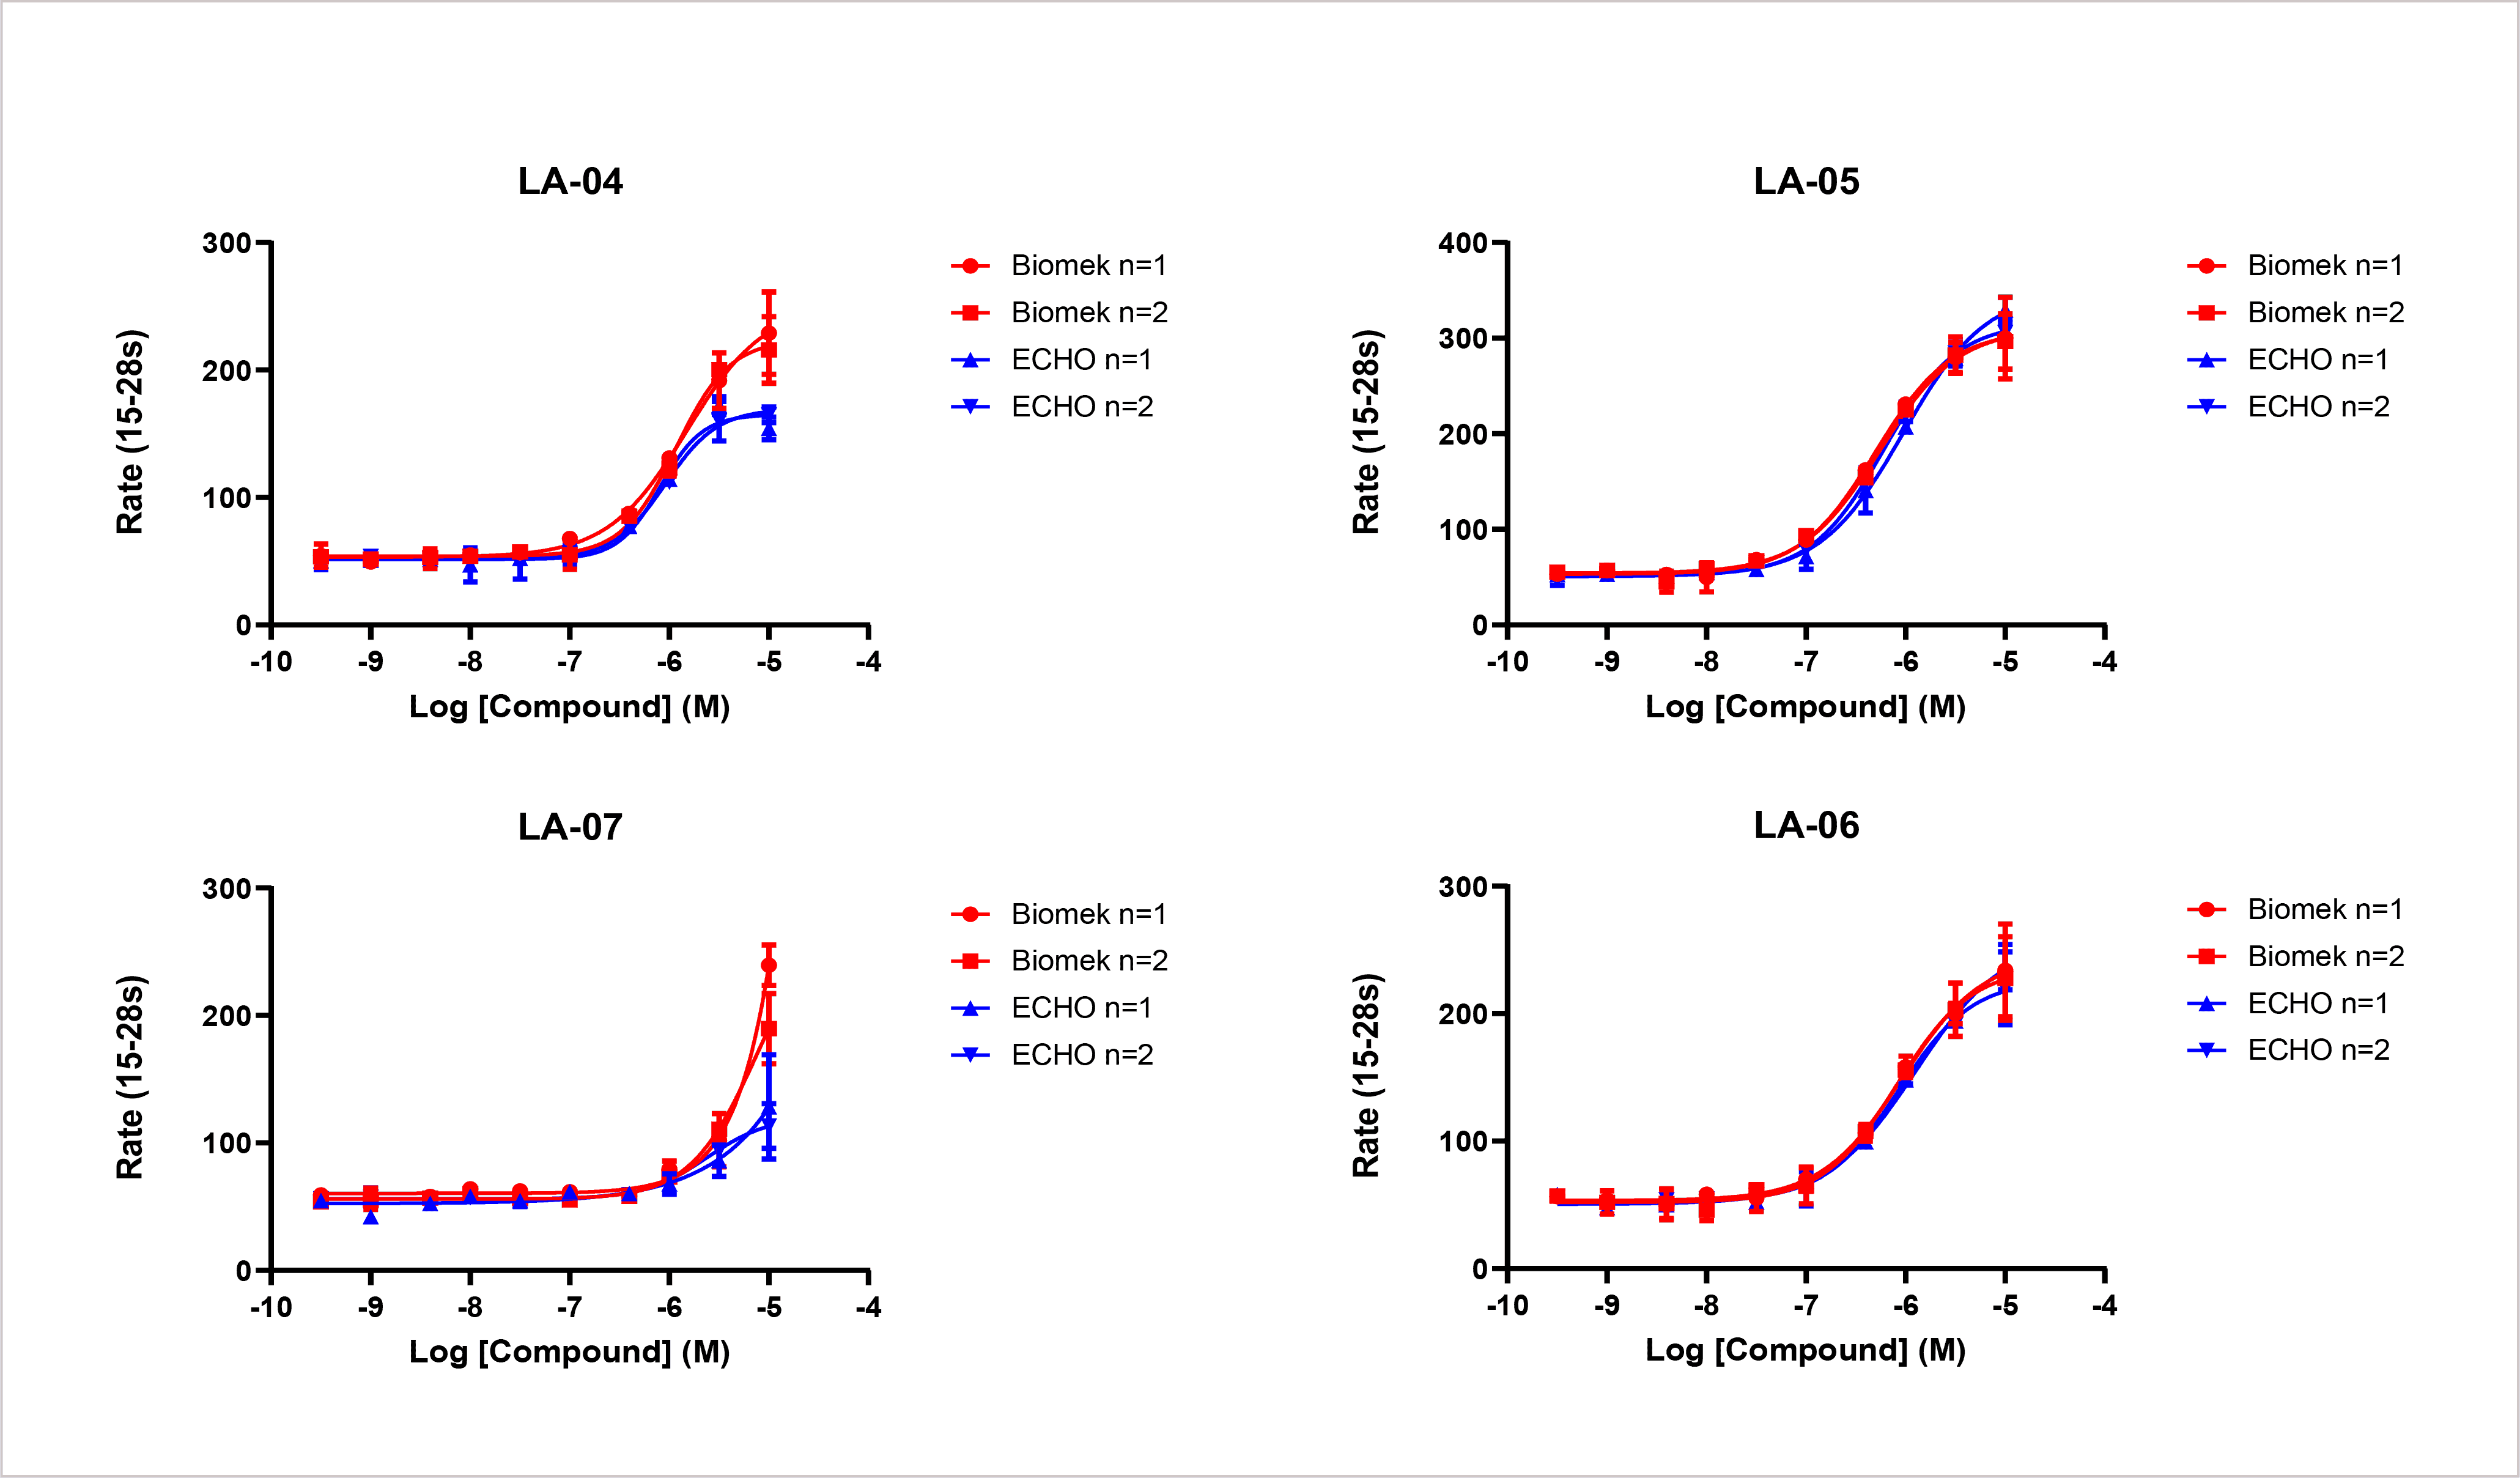 Dose response curves of test compounds